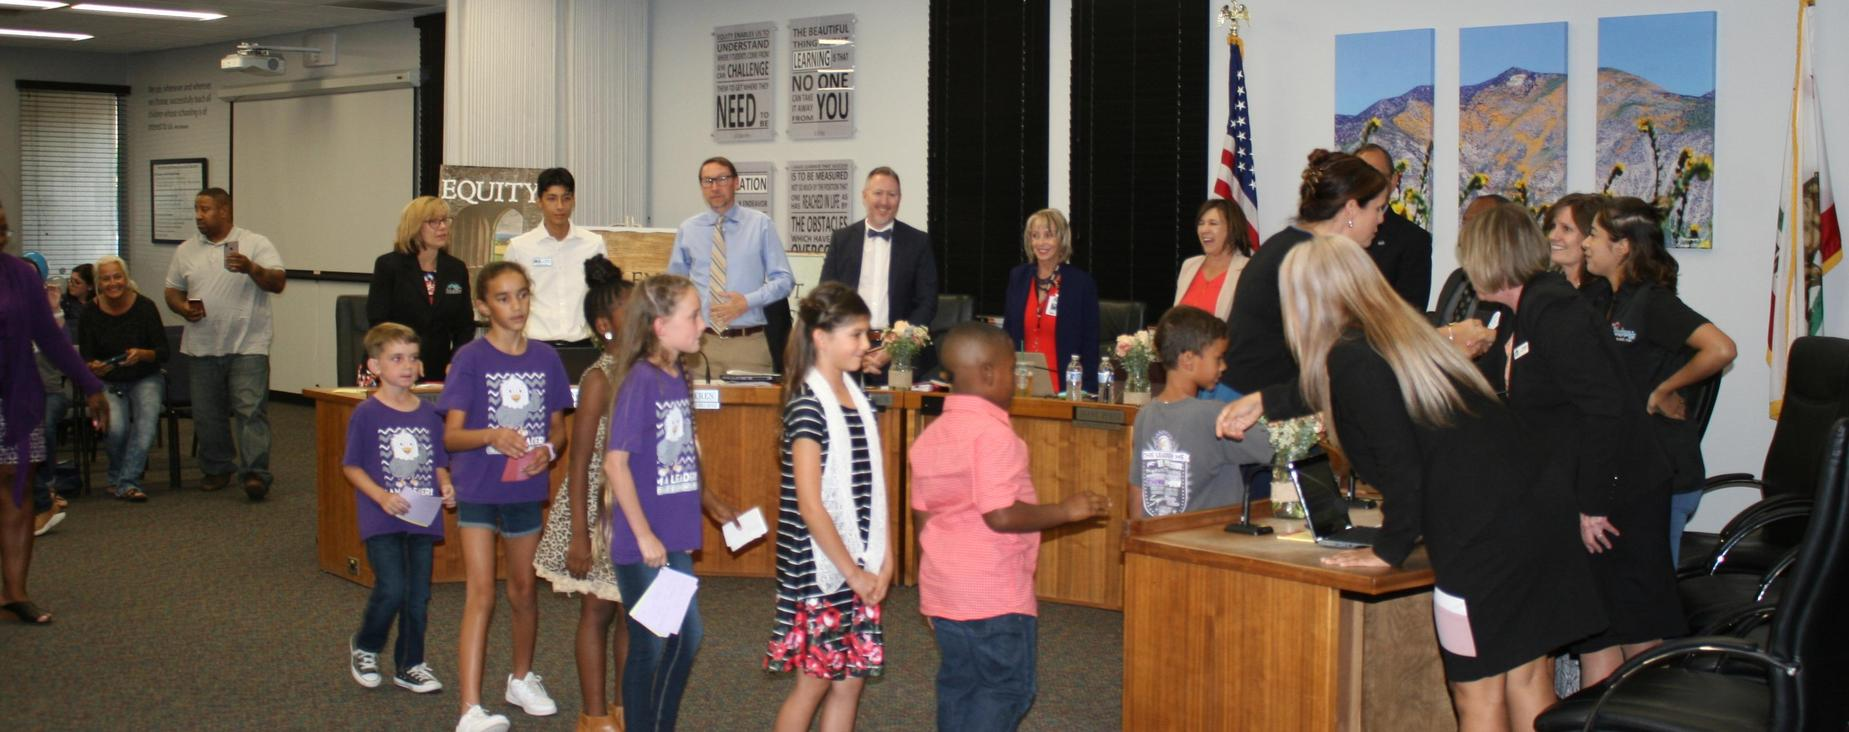 Estudillo student speakers are thanked by the Board of Trustees for a very informative presentation on their Leader in Me school experience.